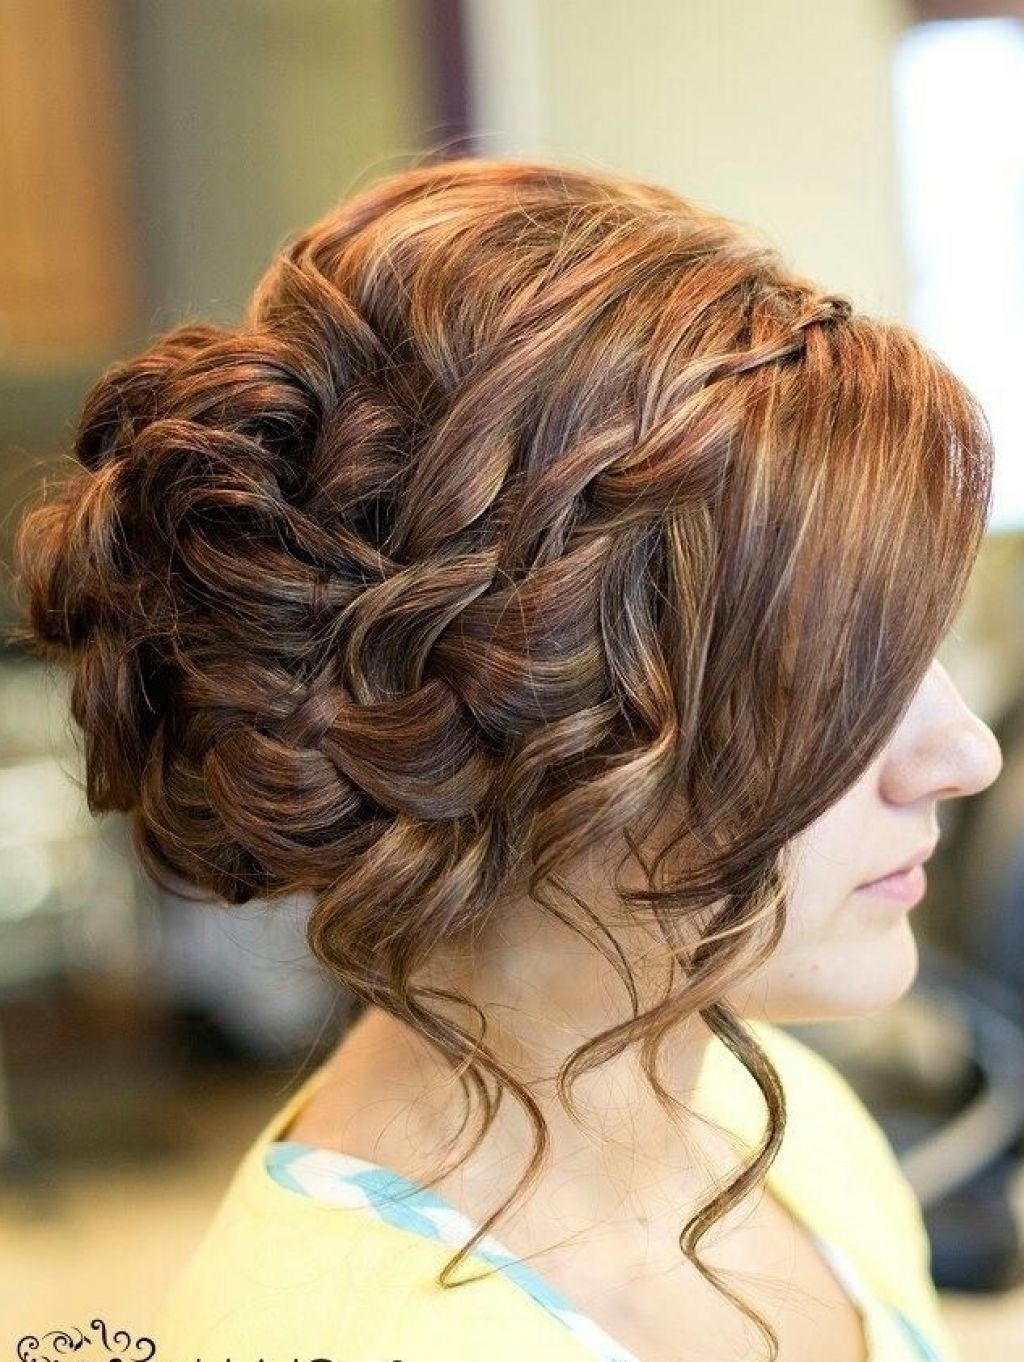 14 Prom Hairstyles For Long Hair That Are Simply Adorable In Well Liked Accent Braid Prom Updos (Gallery 5 of 20)